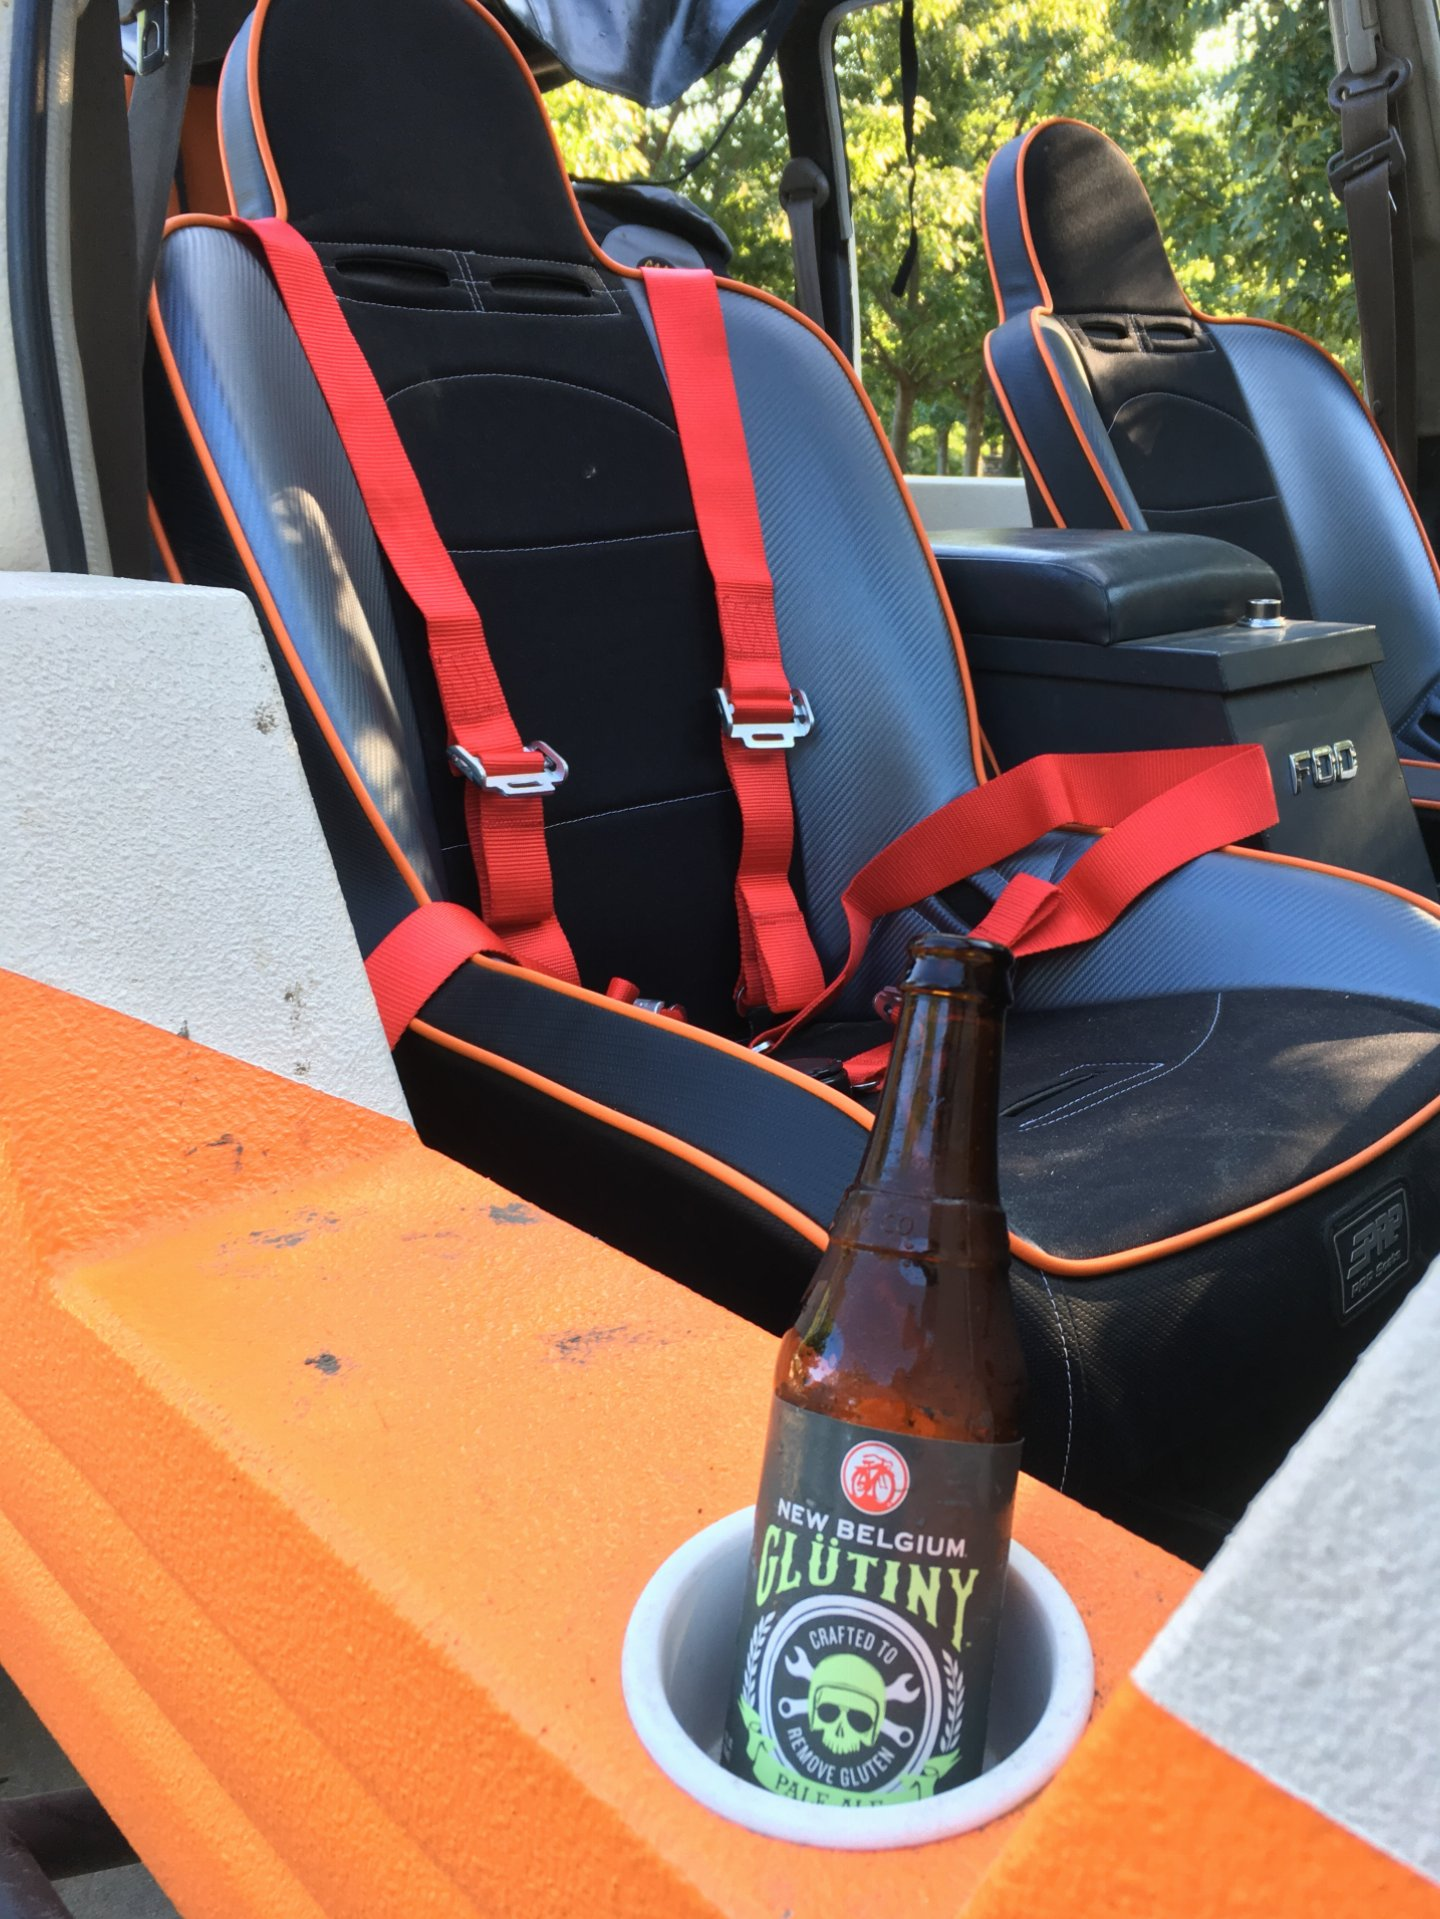 Anyone have Mastercraft seats in their cruiser? Specifically